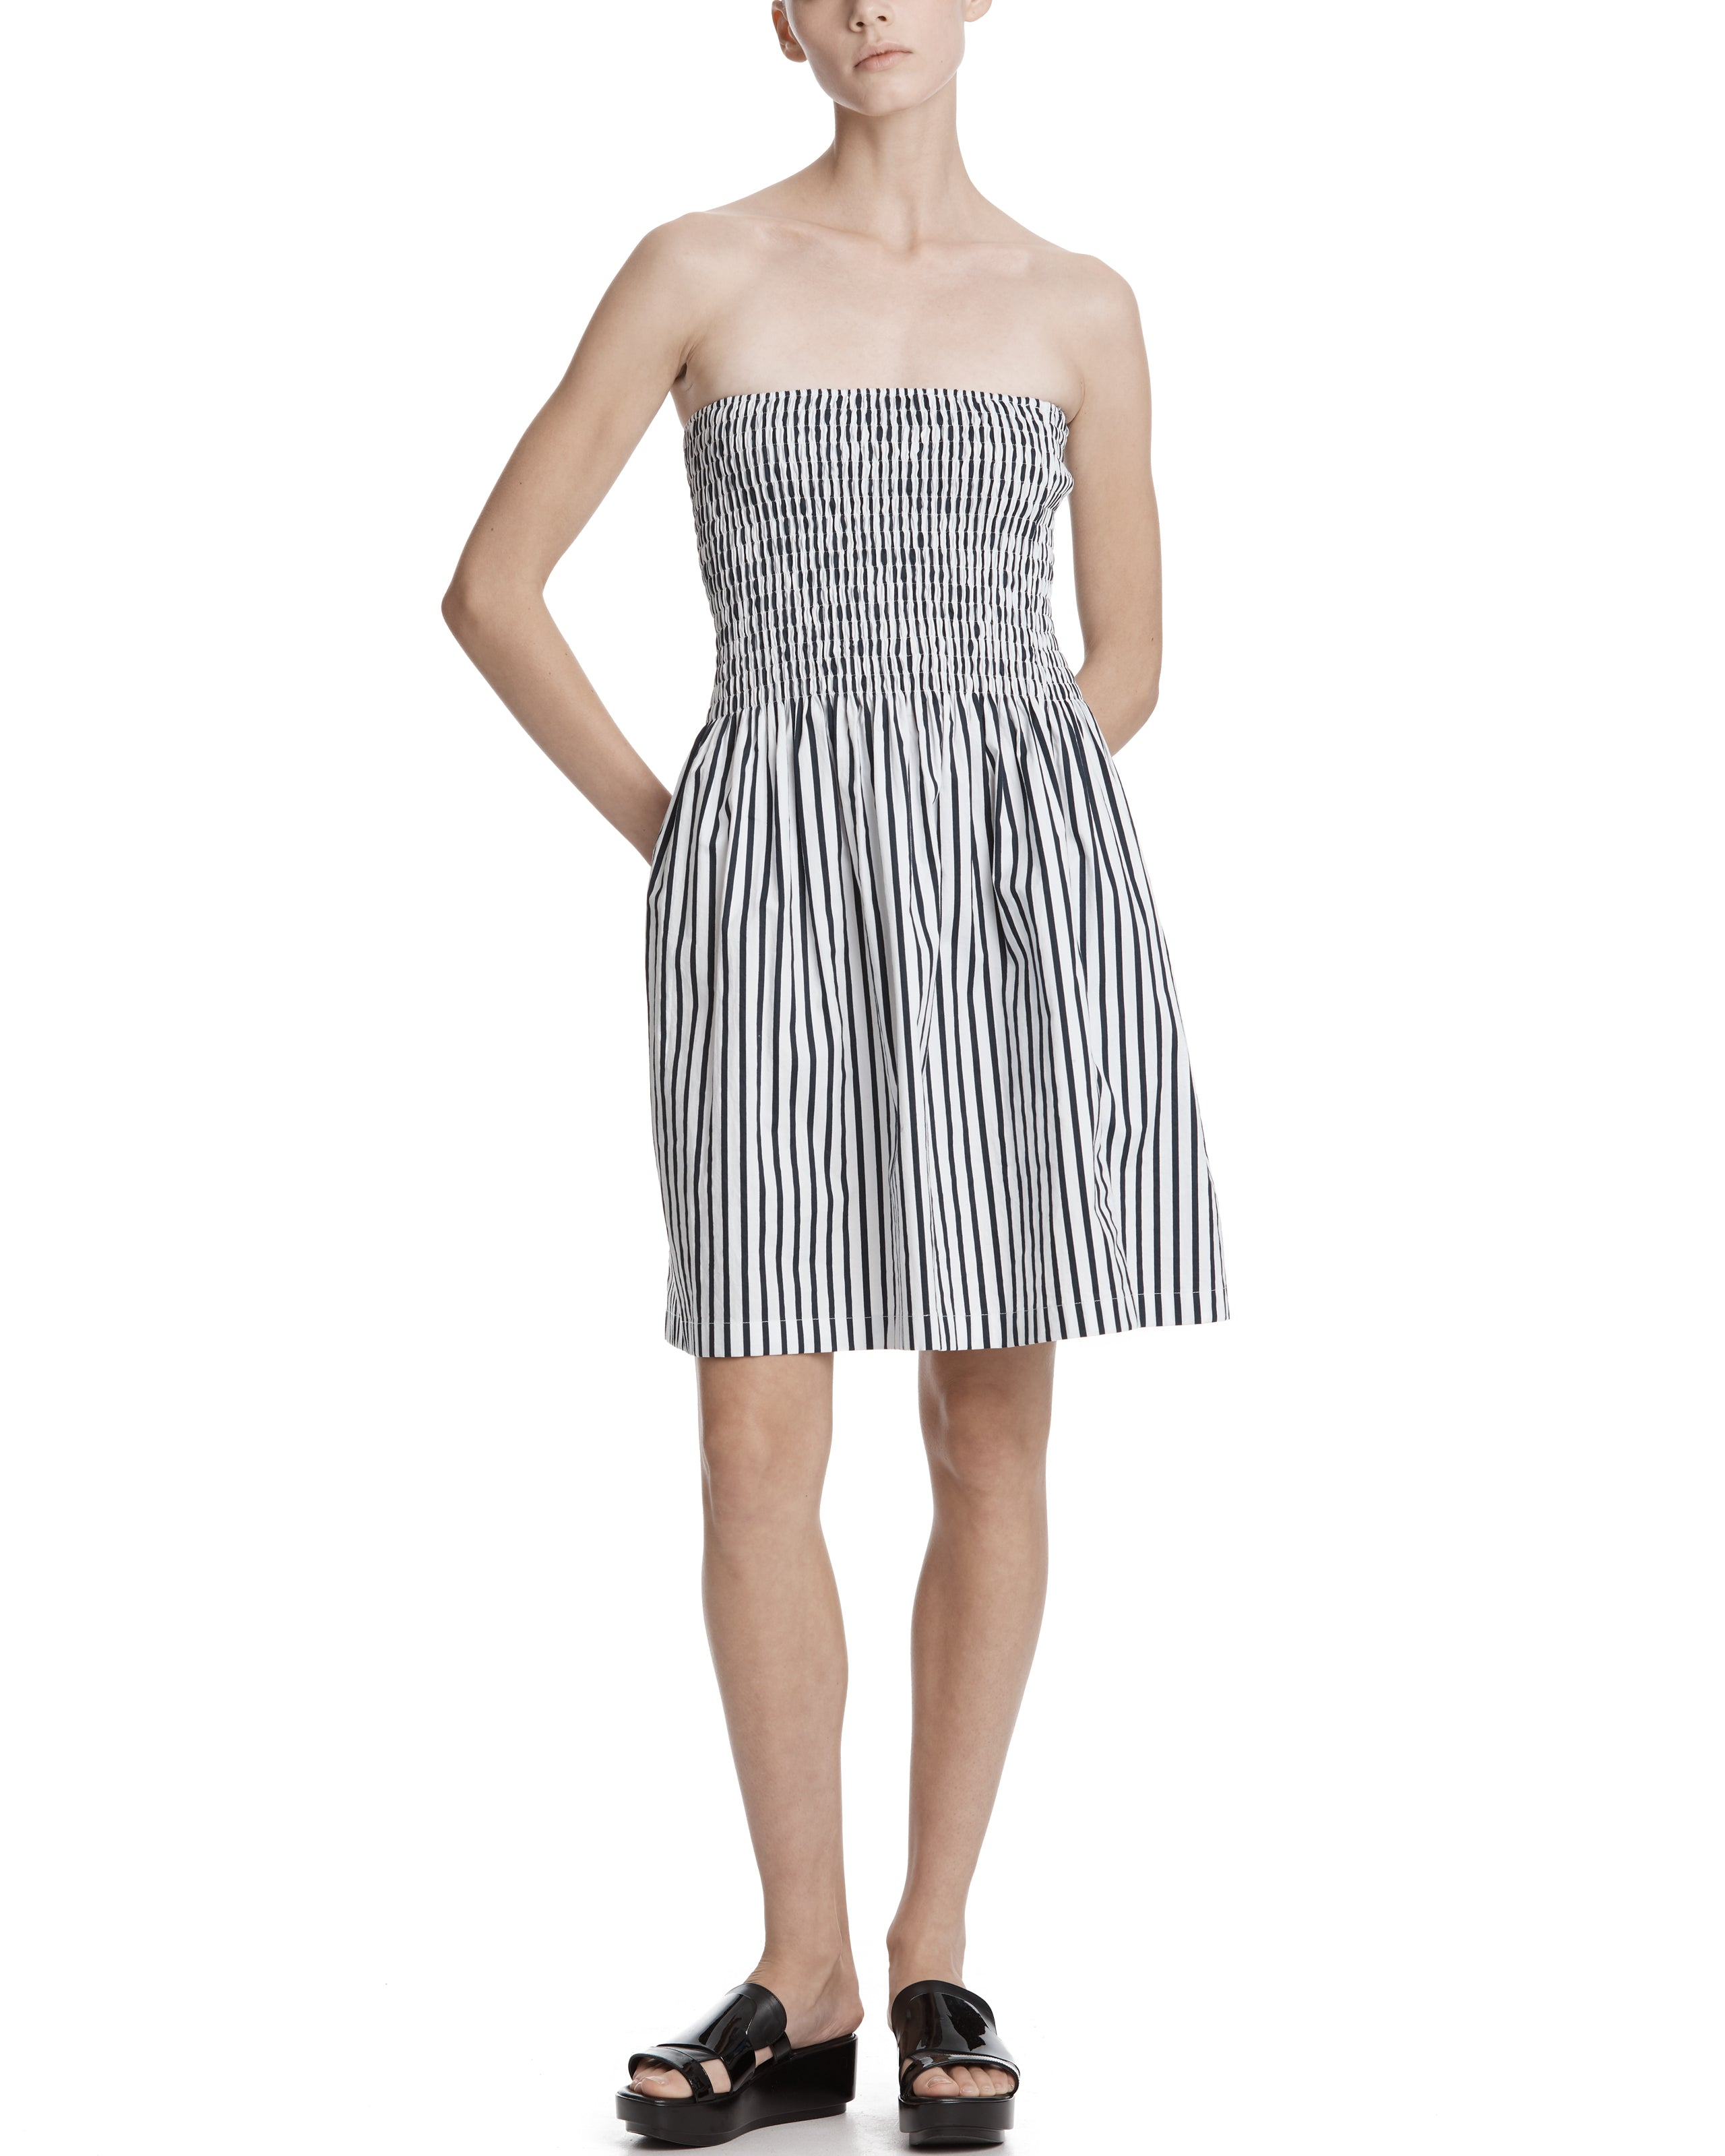 ATM Cotton Striped Ruched Dress